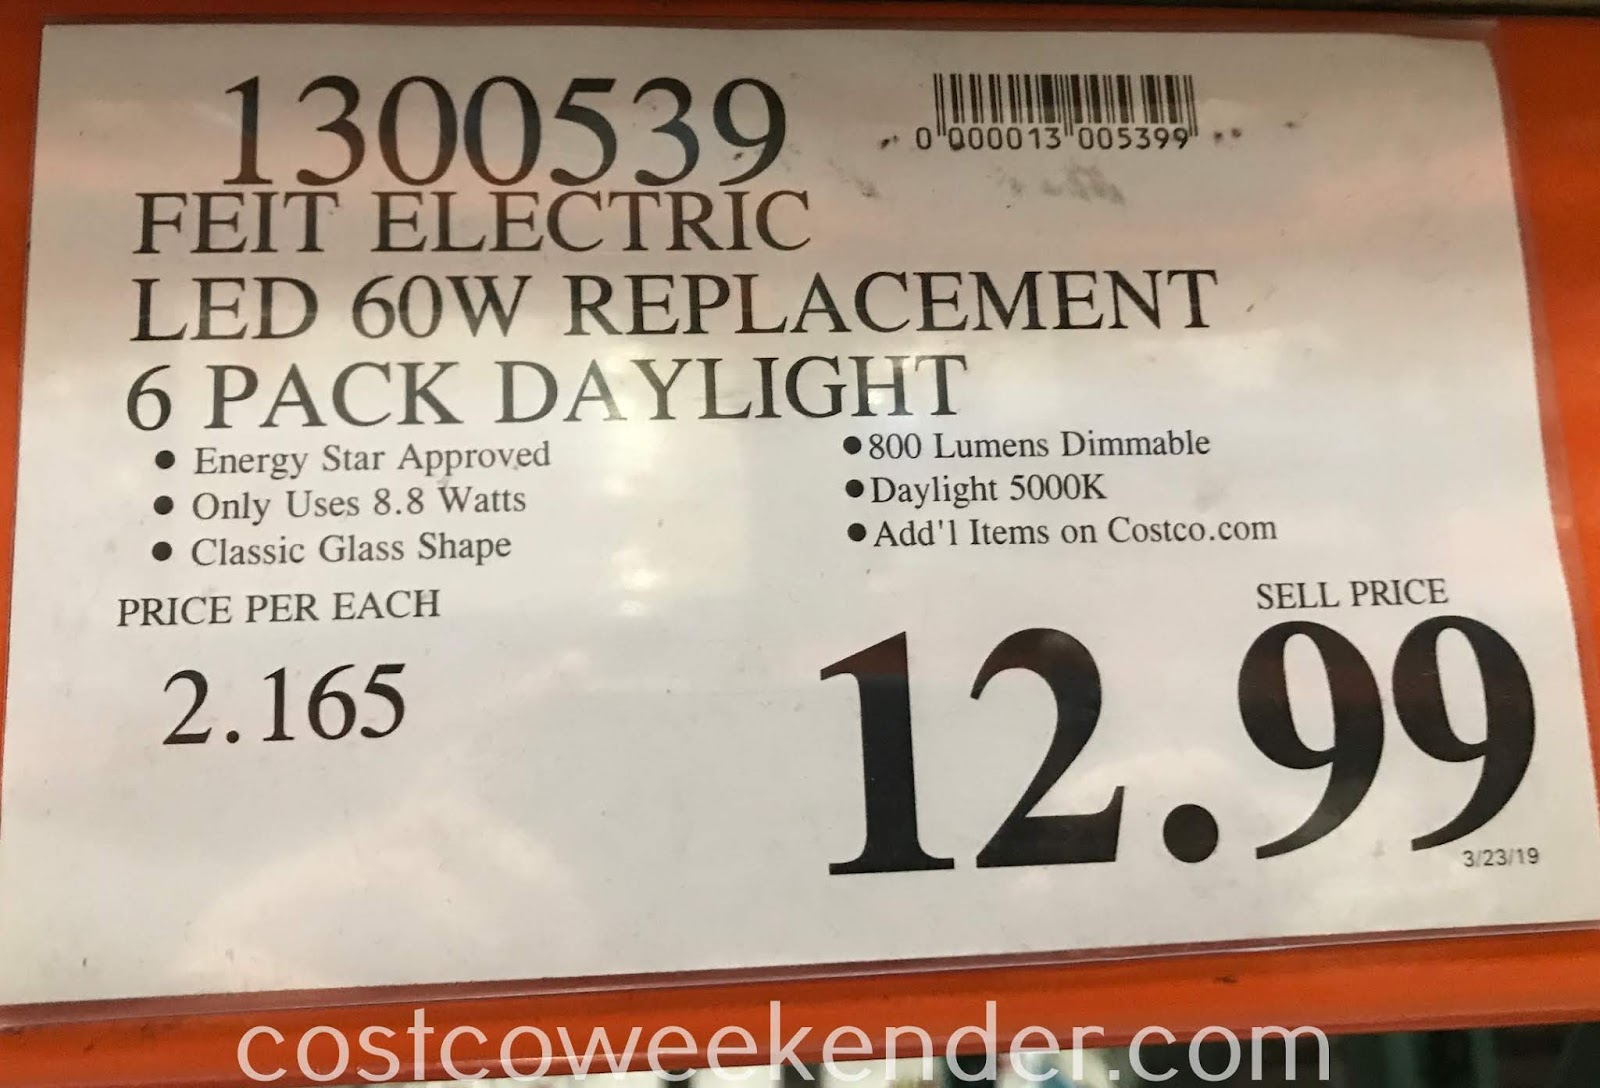 Deal for a 6 pack of Feit LED 60W Replacement Bulbs at Costco